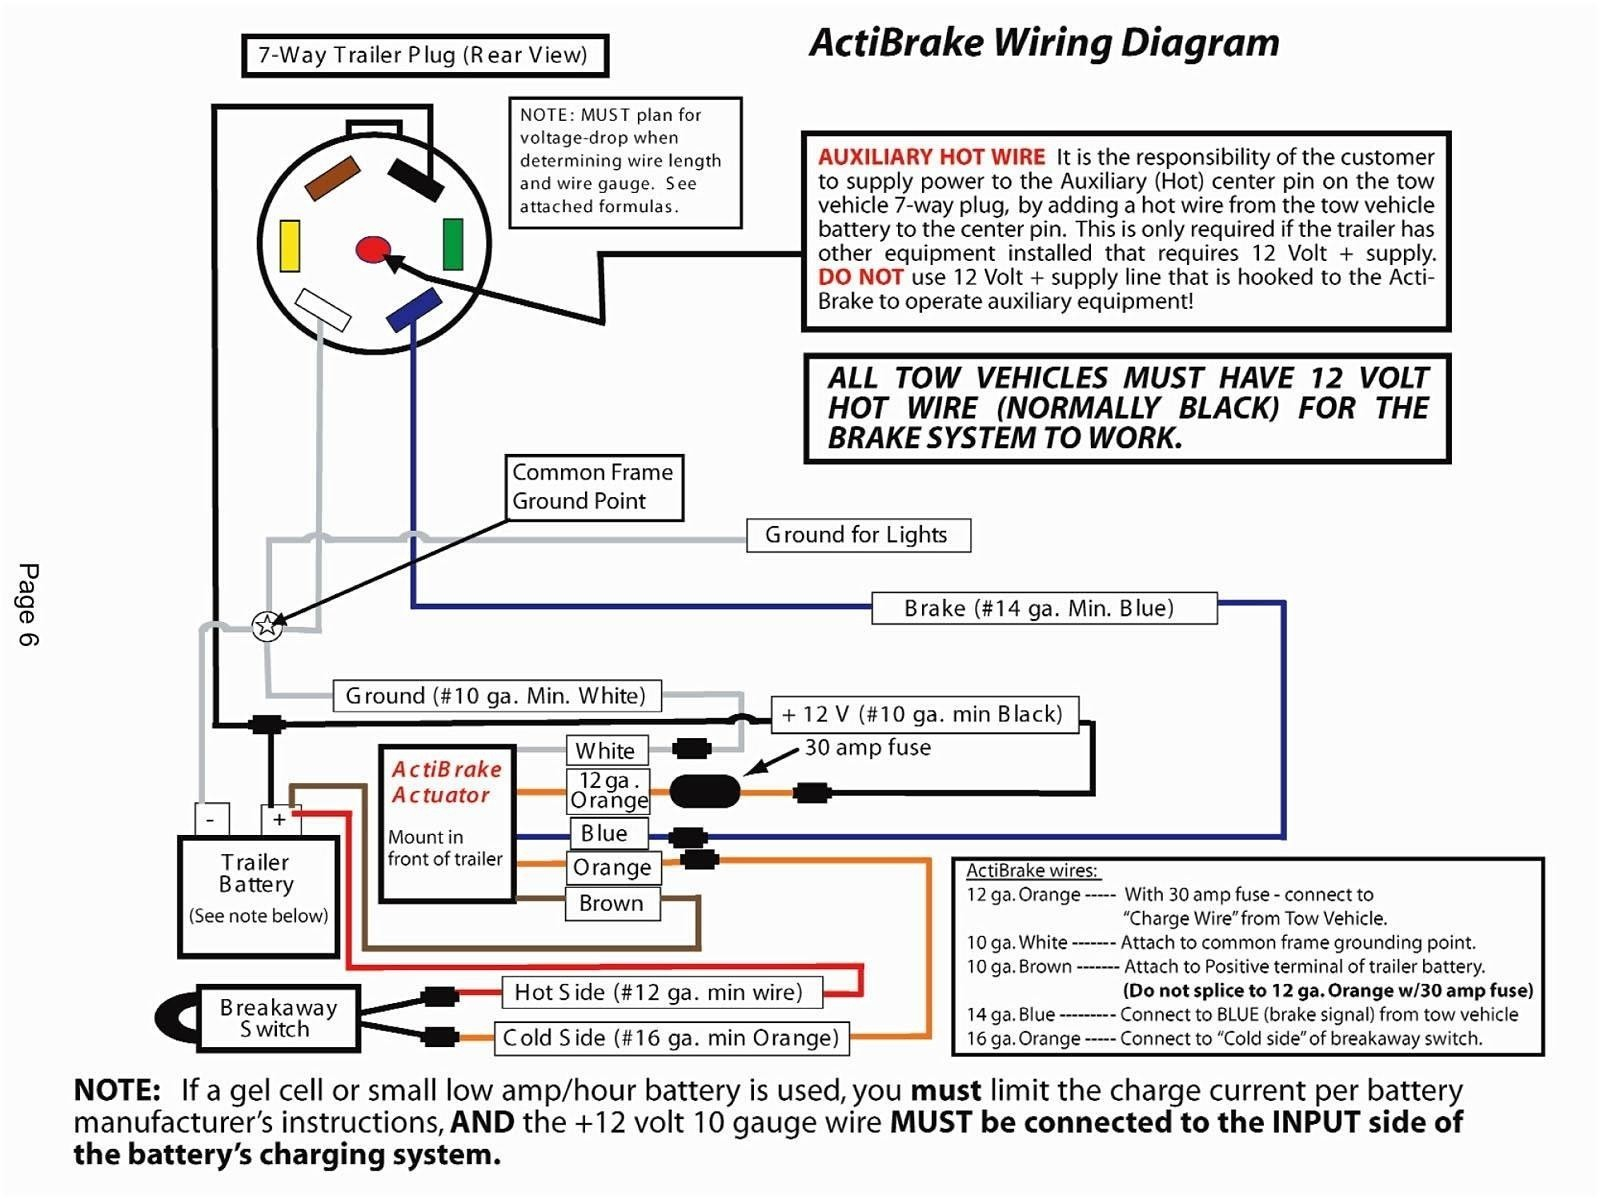 tow vehicle wiring diagram Download-Automotive Trailer Wiring Diagram Save Wiring Diagram Trailer Brakes Save Reese Trailer Wiring Diagram 8-b